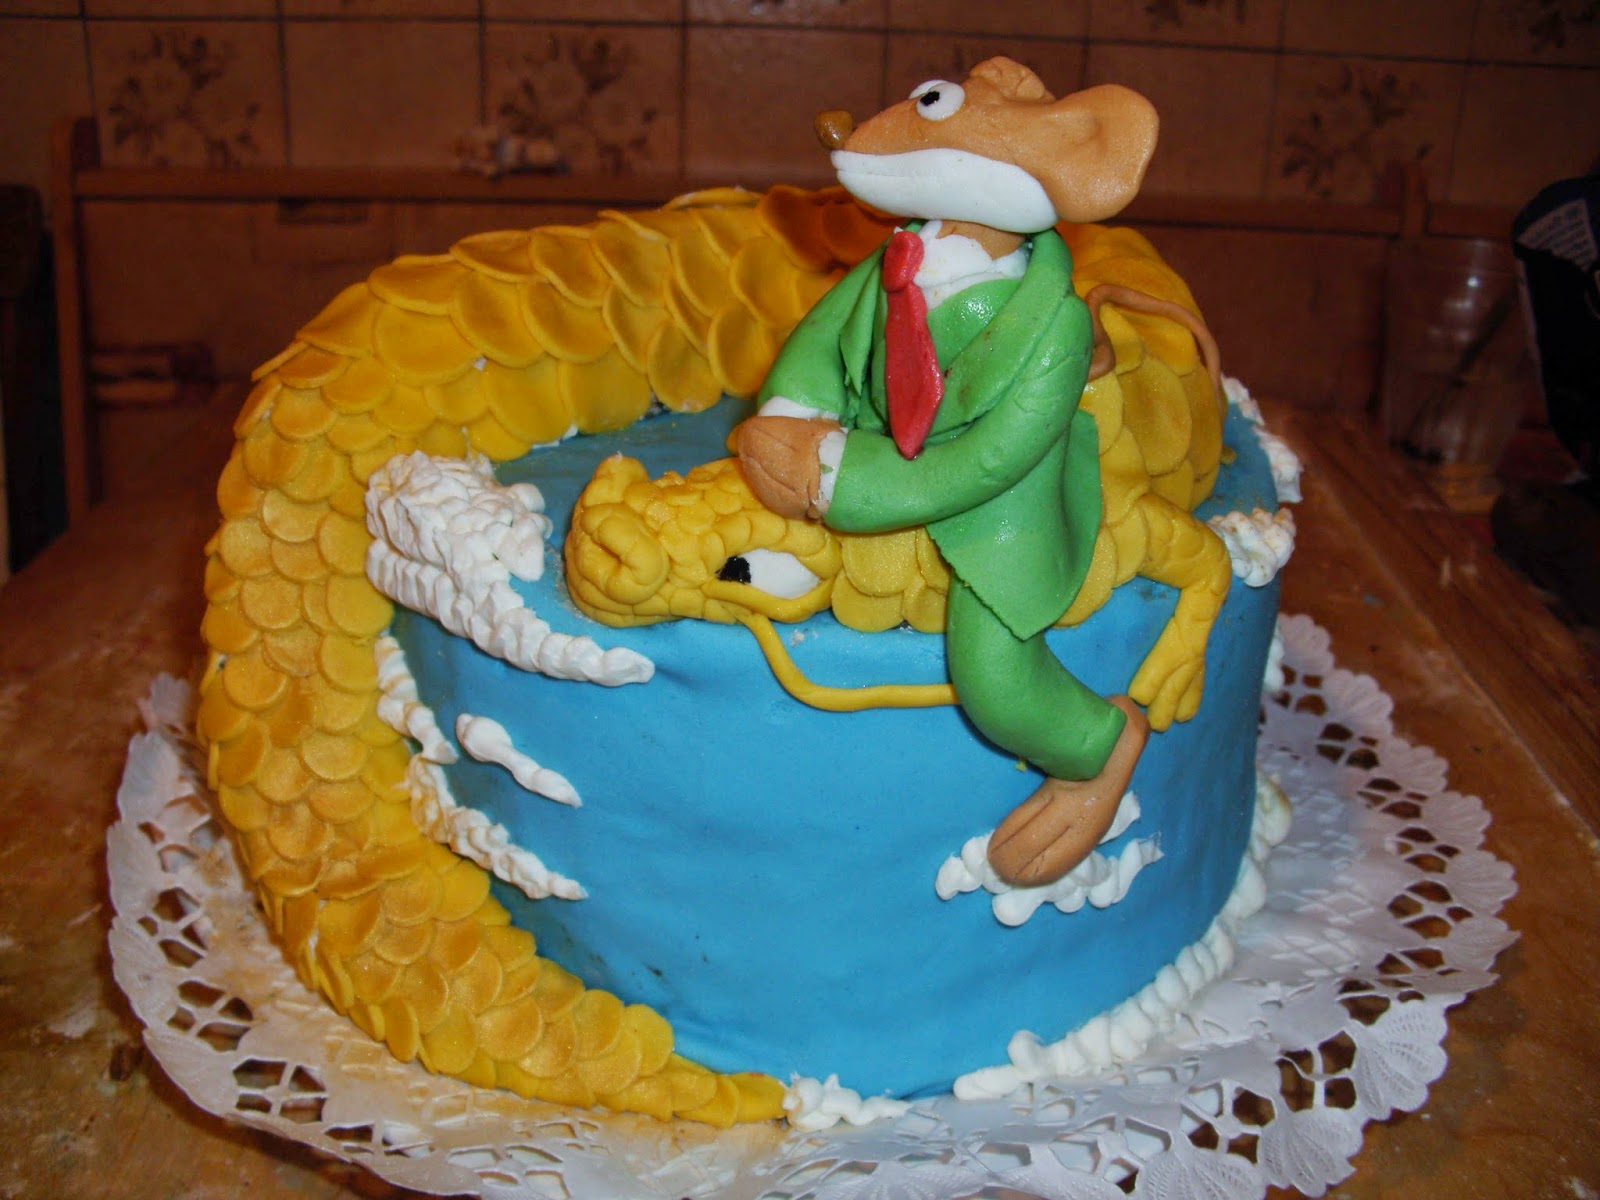 geronimo stilton cake